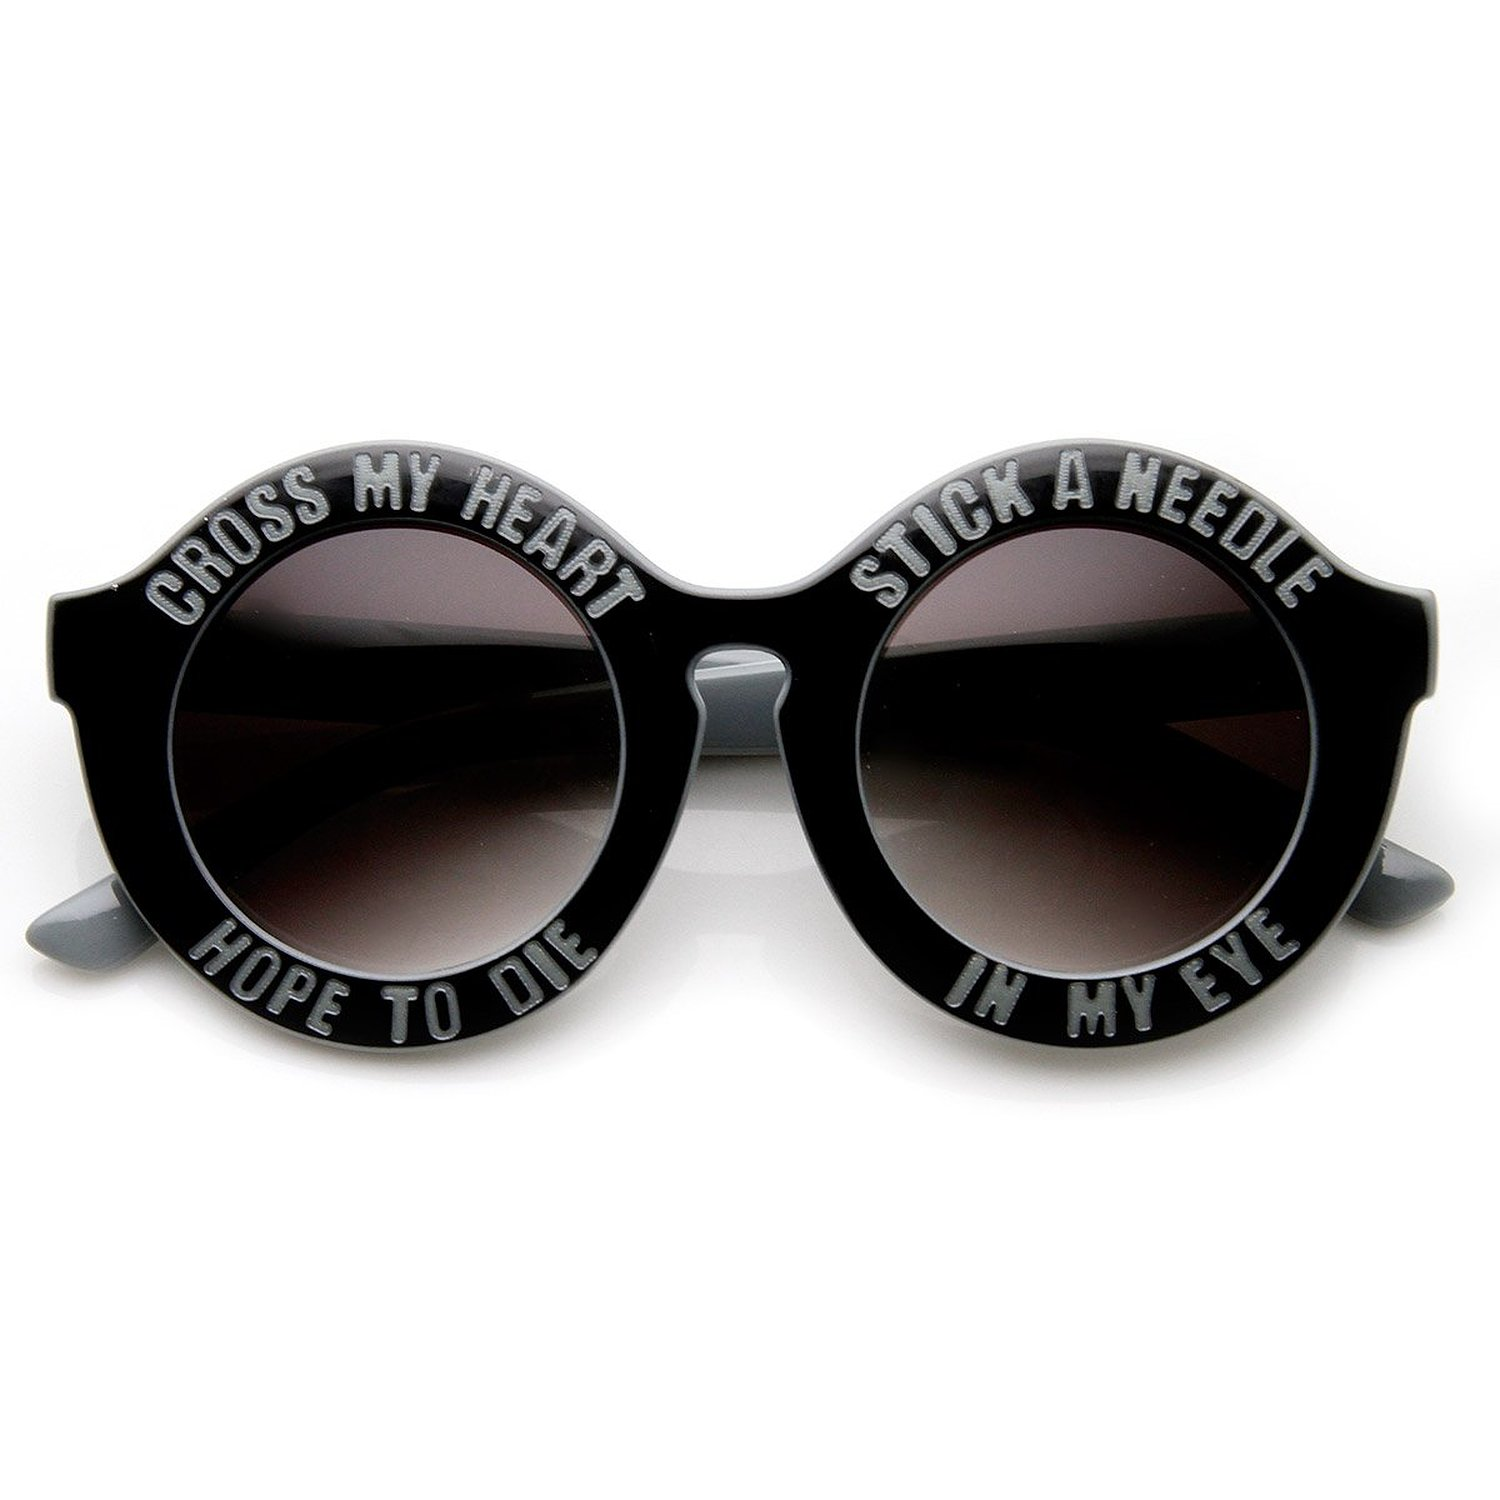 Amazon.com: womens oversized cross my heart text font round sunglasses (gray): clothing